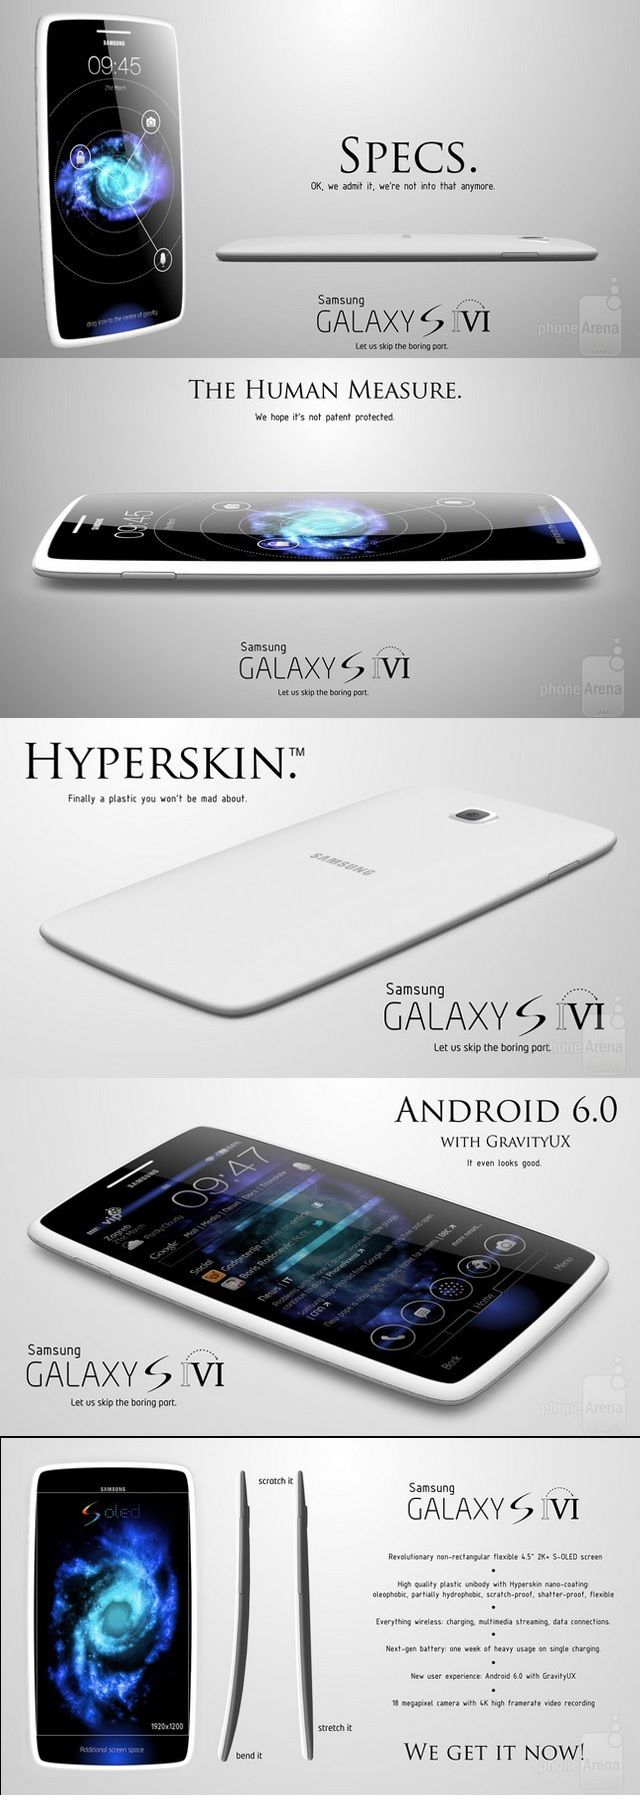 Galaxy s6 capacitive buttons the android soul - Concept Samsung S4 Android Samsung